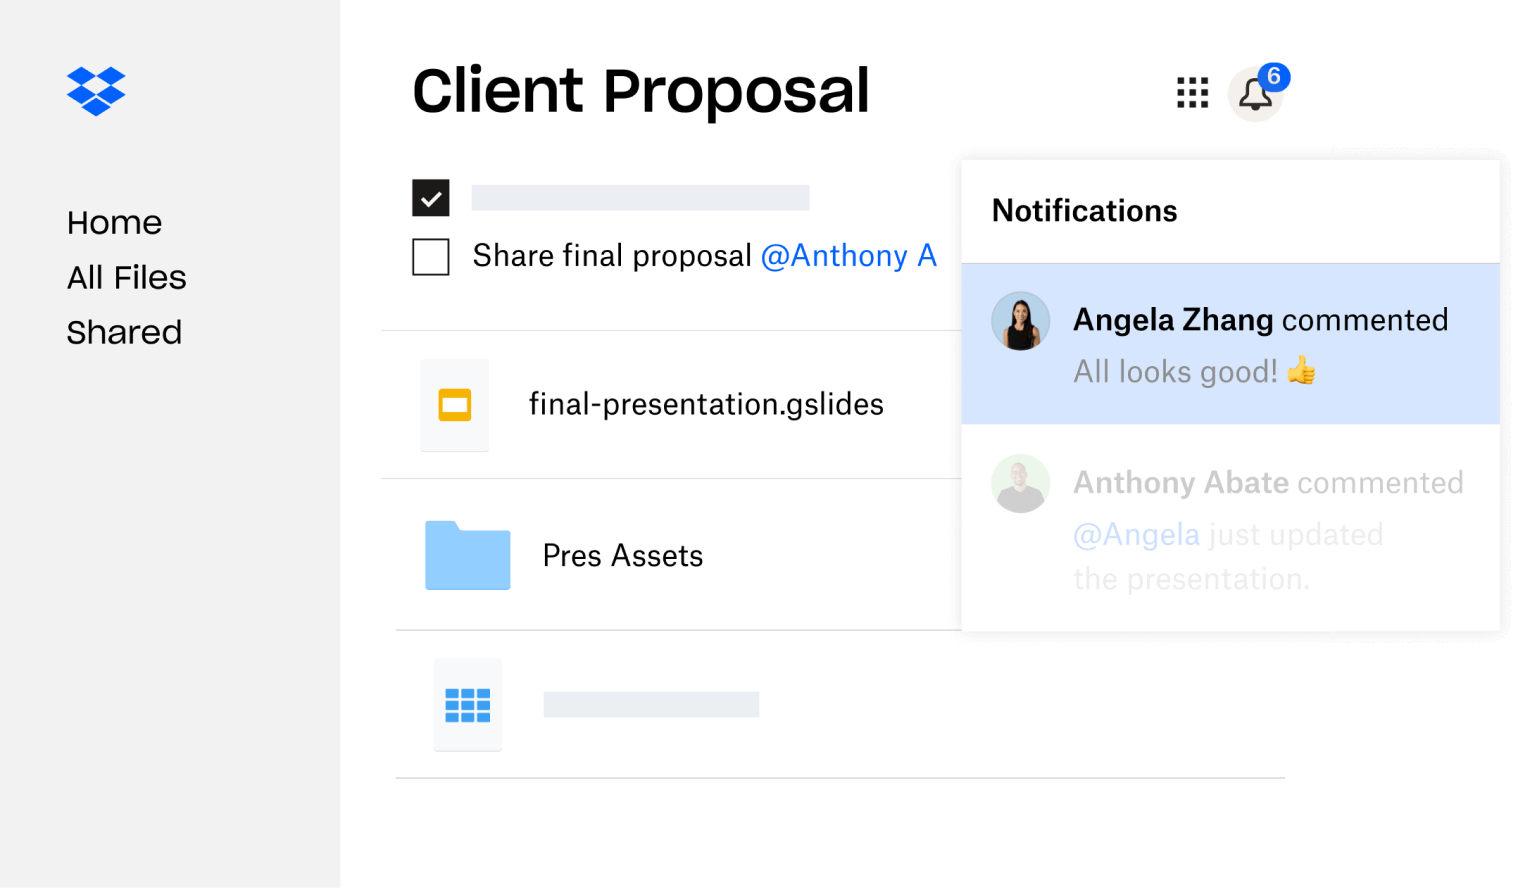 A client proposal created in Dropbox is shared with multiple users who have left feedback.